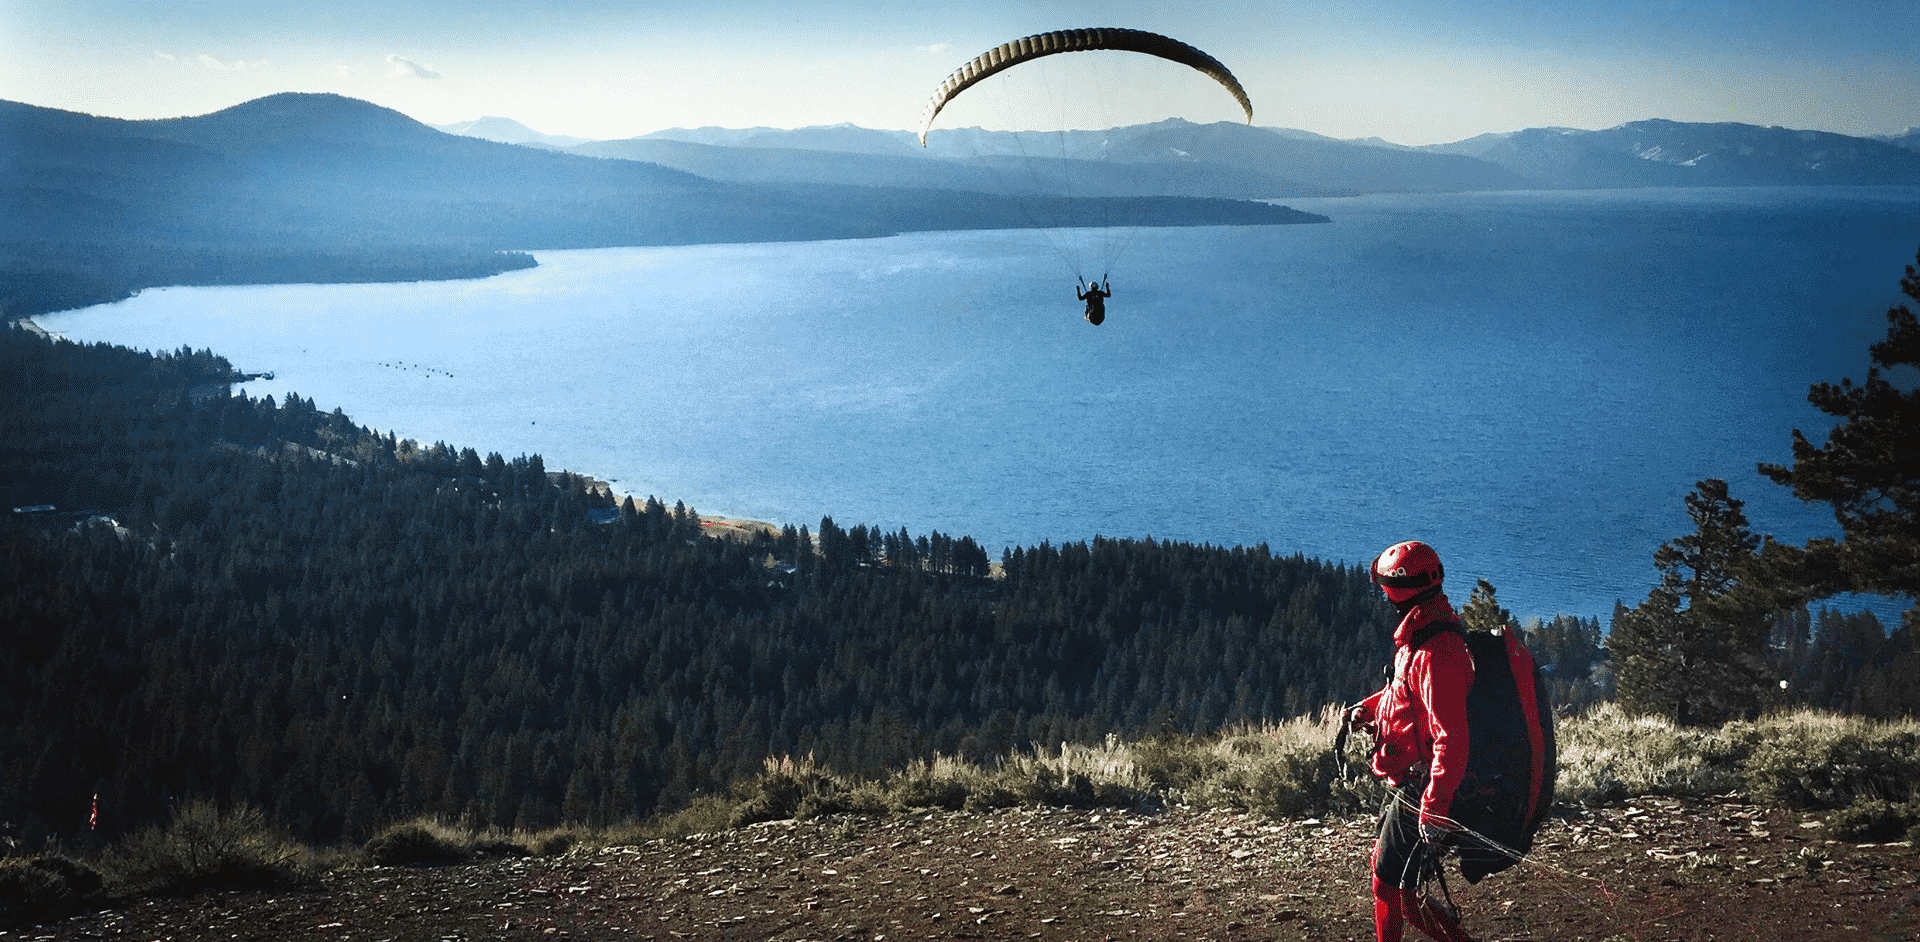 Home - Lake Tahoe Paragliding